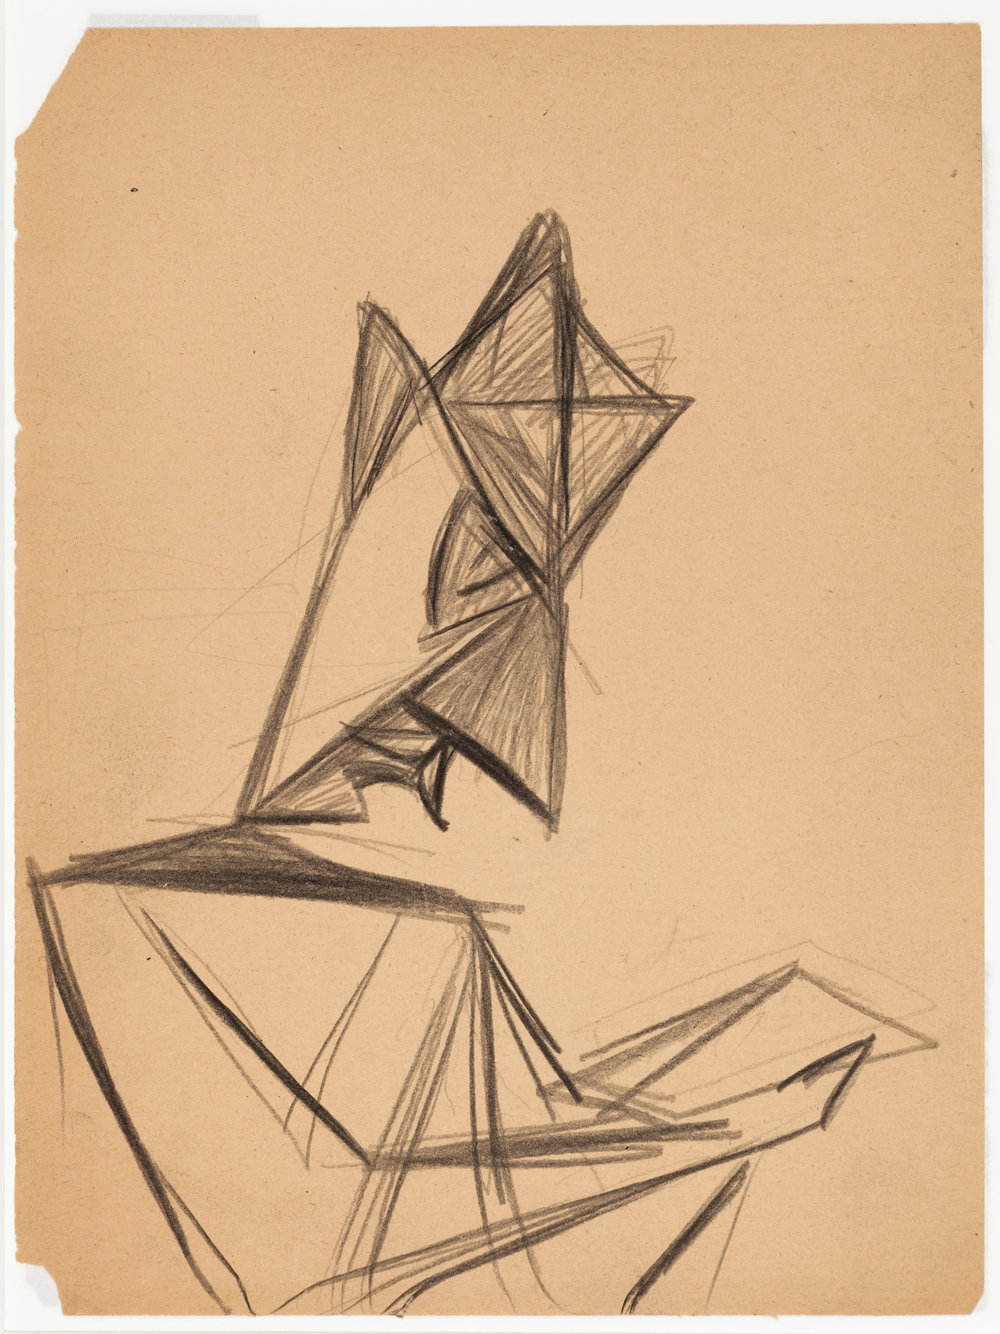 Hedda Sterne,  Portrait of Saul [Steinberg] , 1943, Graphite on paper, 12 in. x 8 3/4 in. (30.48 cm x 22.23 cm)